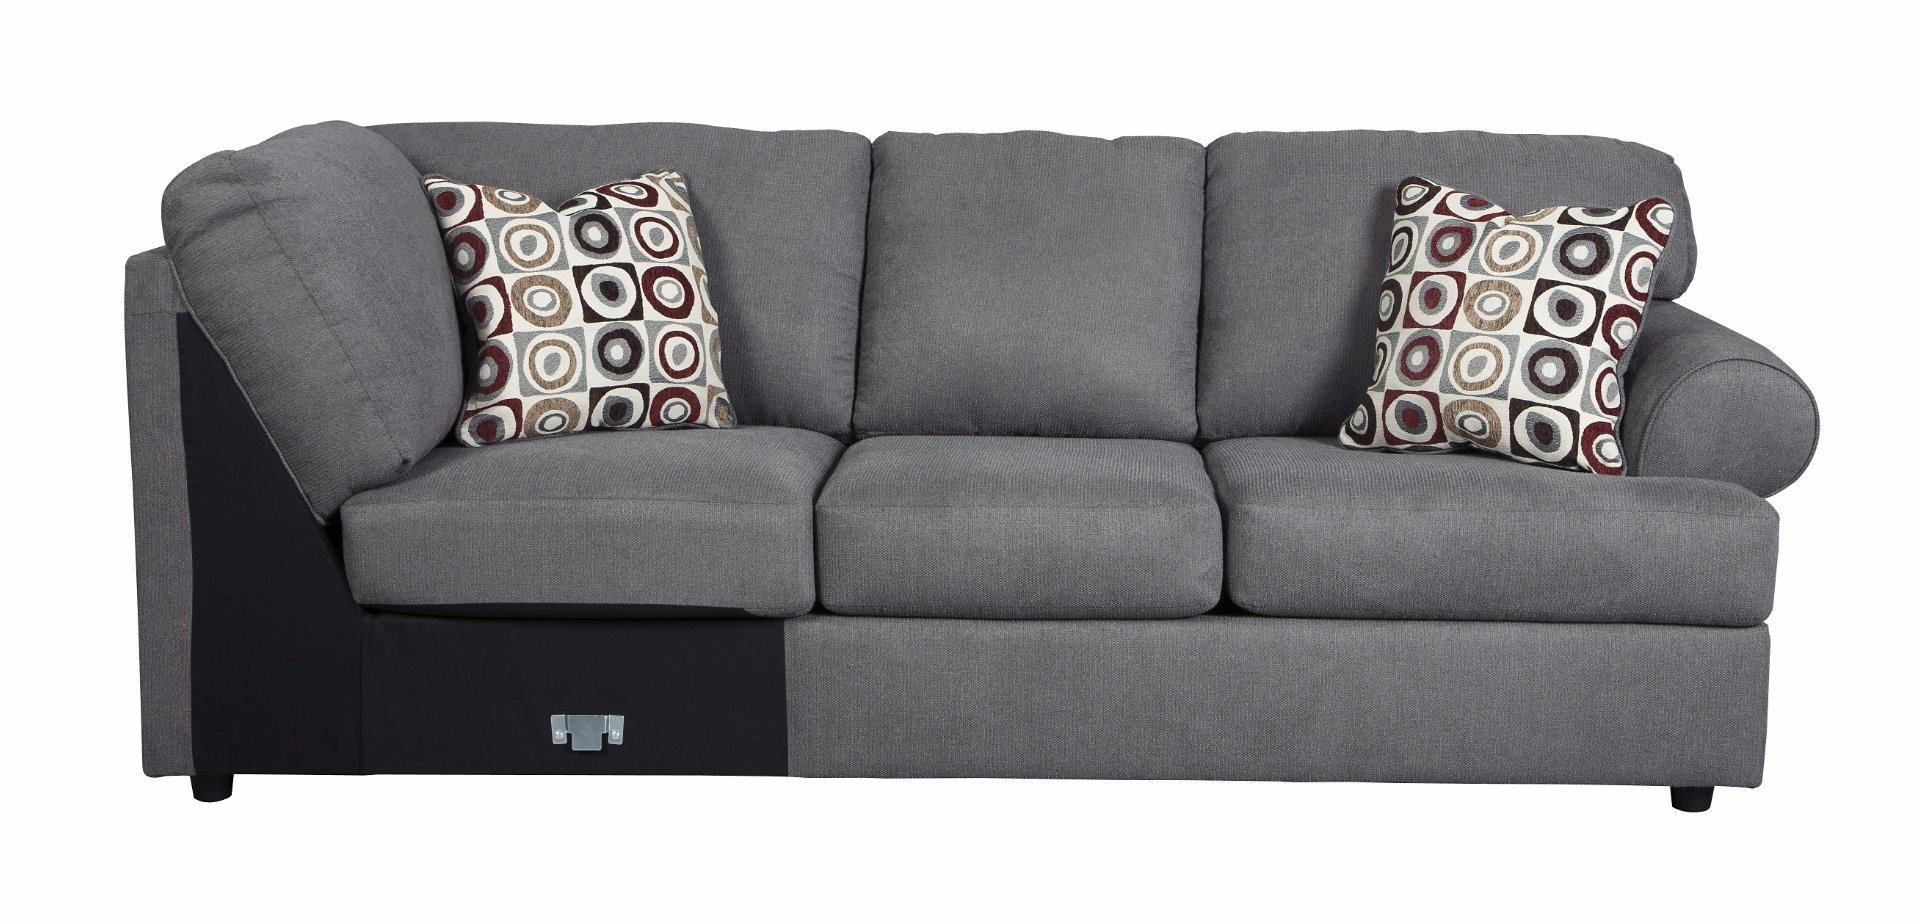 Ashley Furniture Signature Design - Jayceon Right Arm Facing Sofa - Contemporary Style Sectional - Gray by Signature Design by Ashley